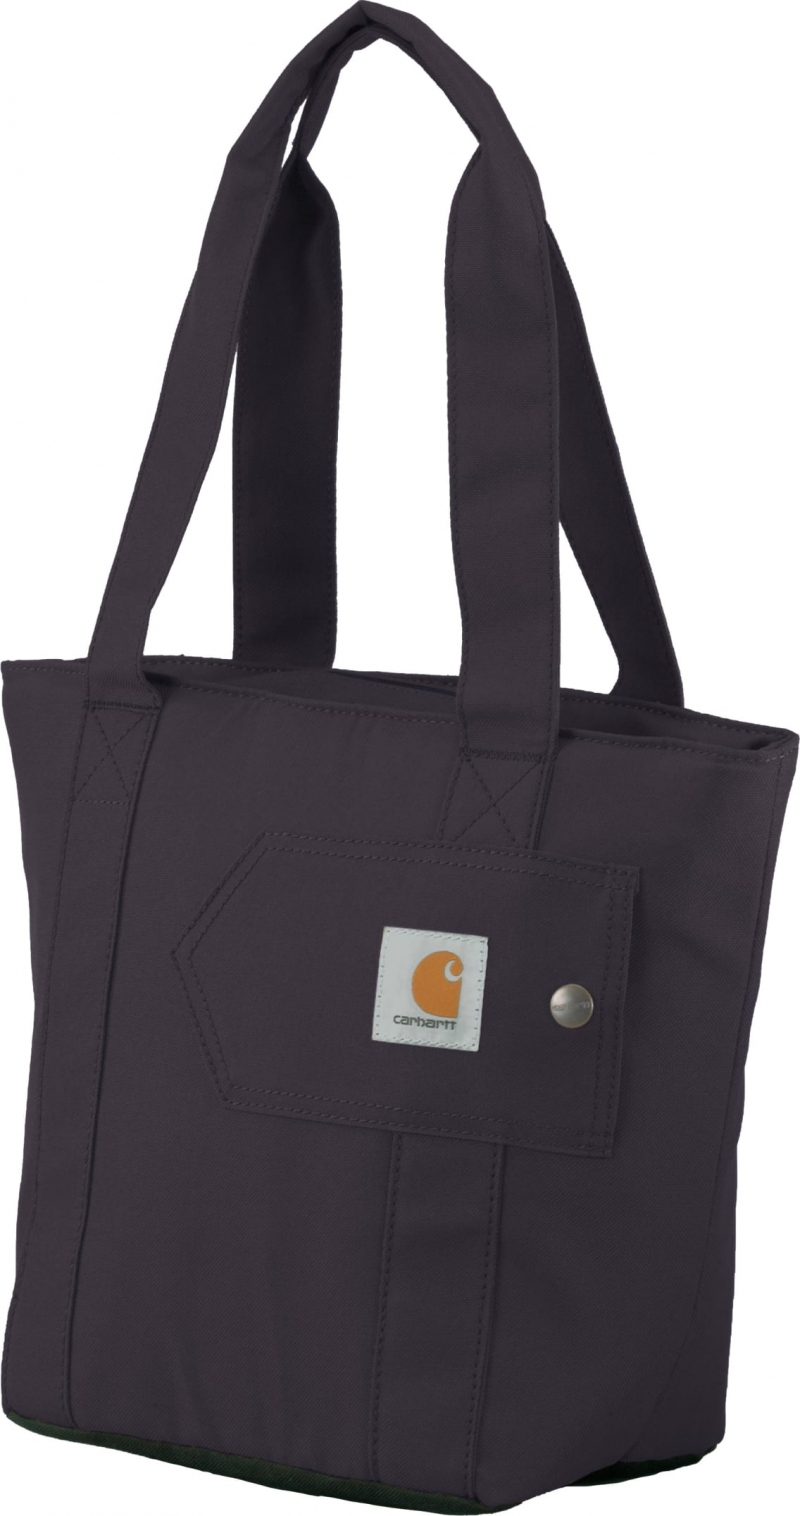 Carhartt Women's Lunch Tote